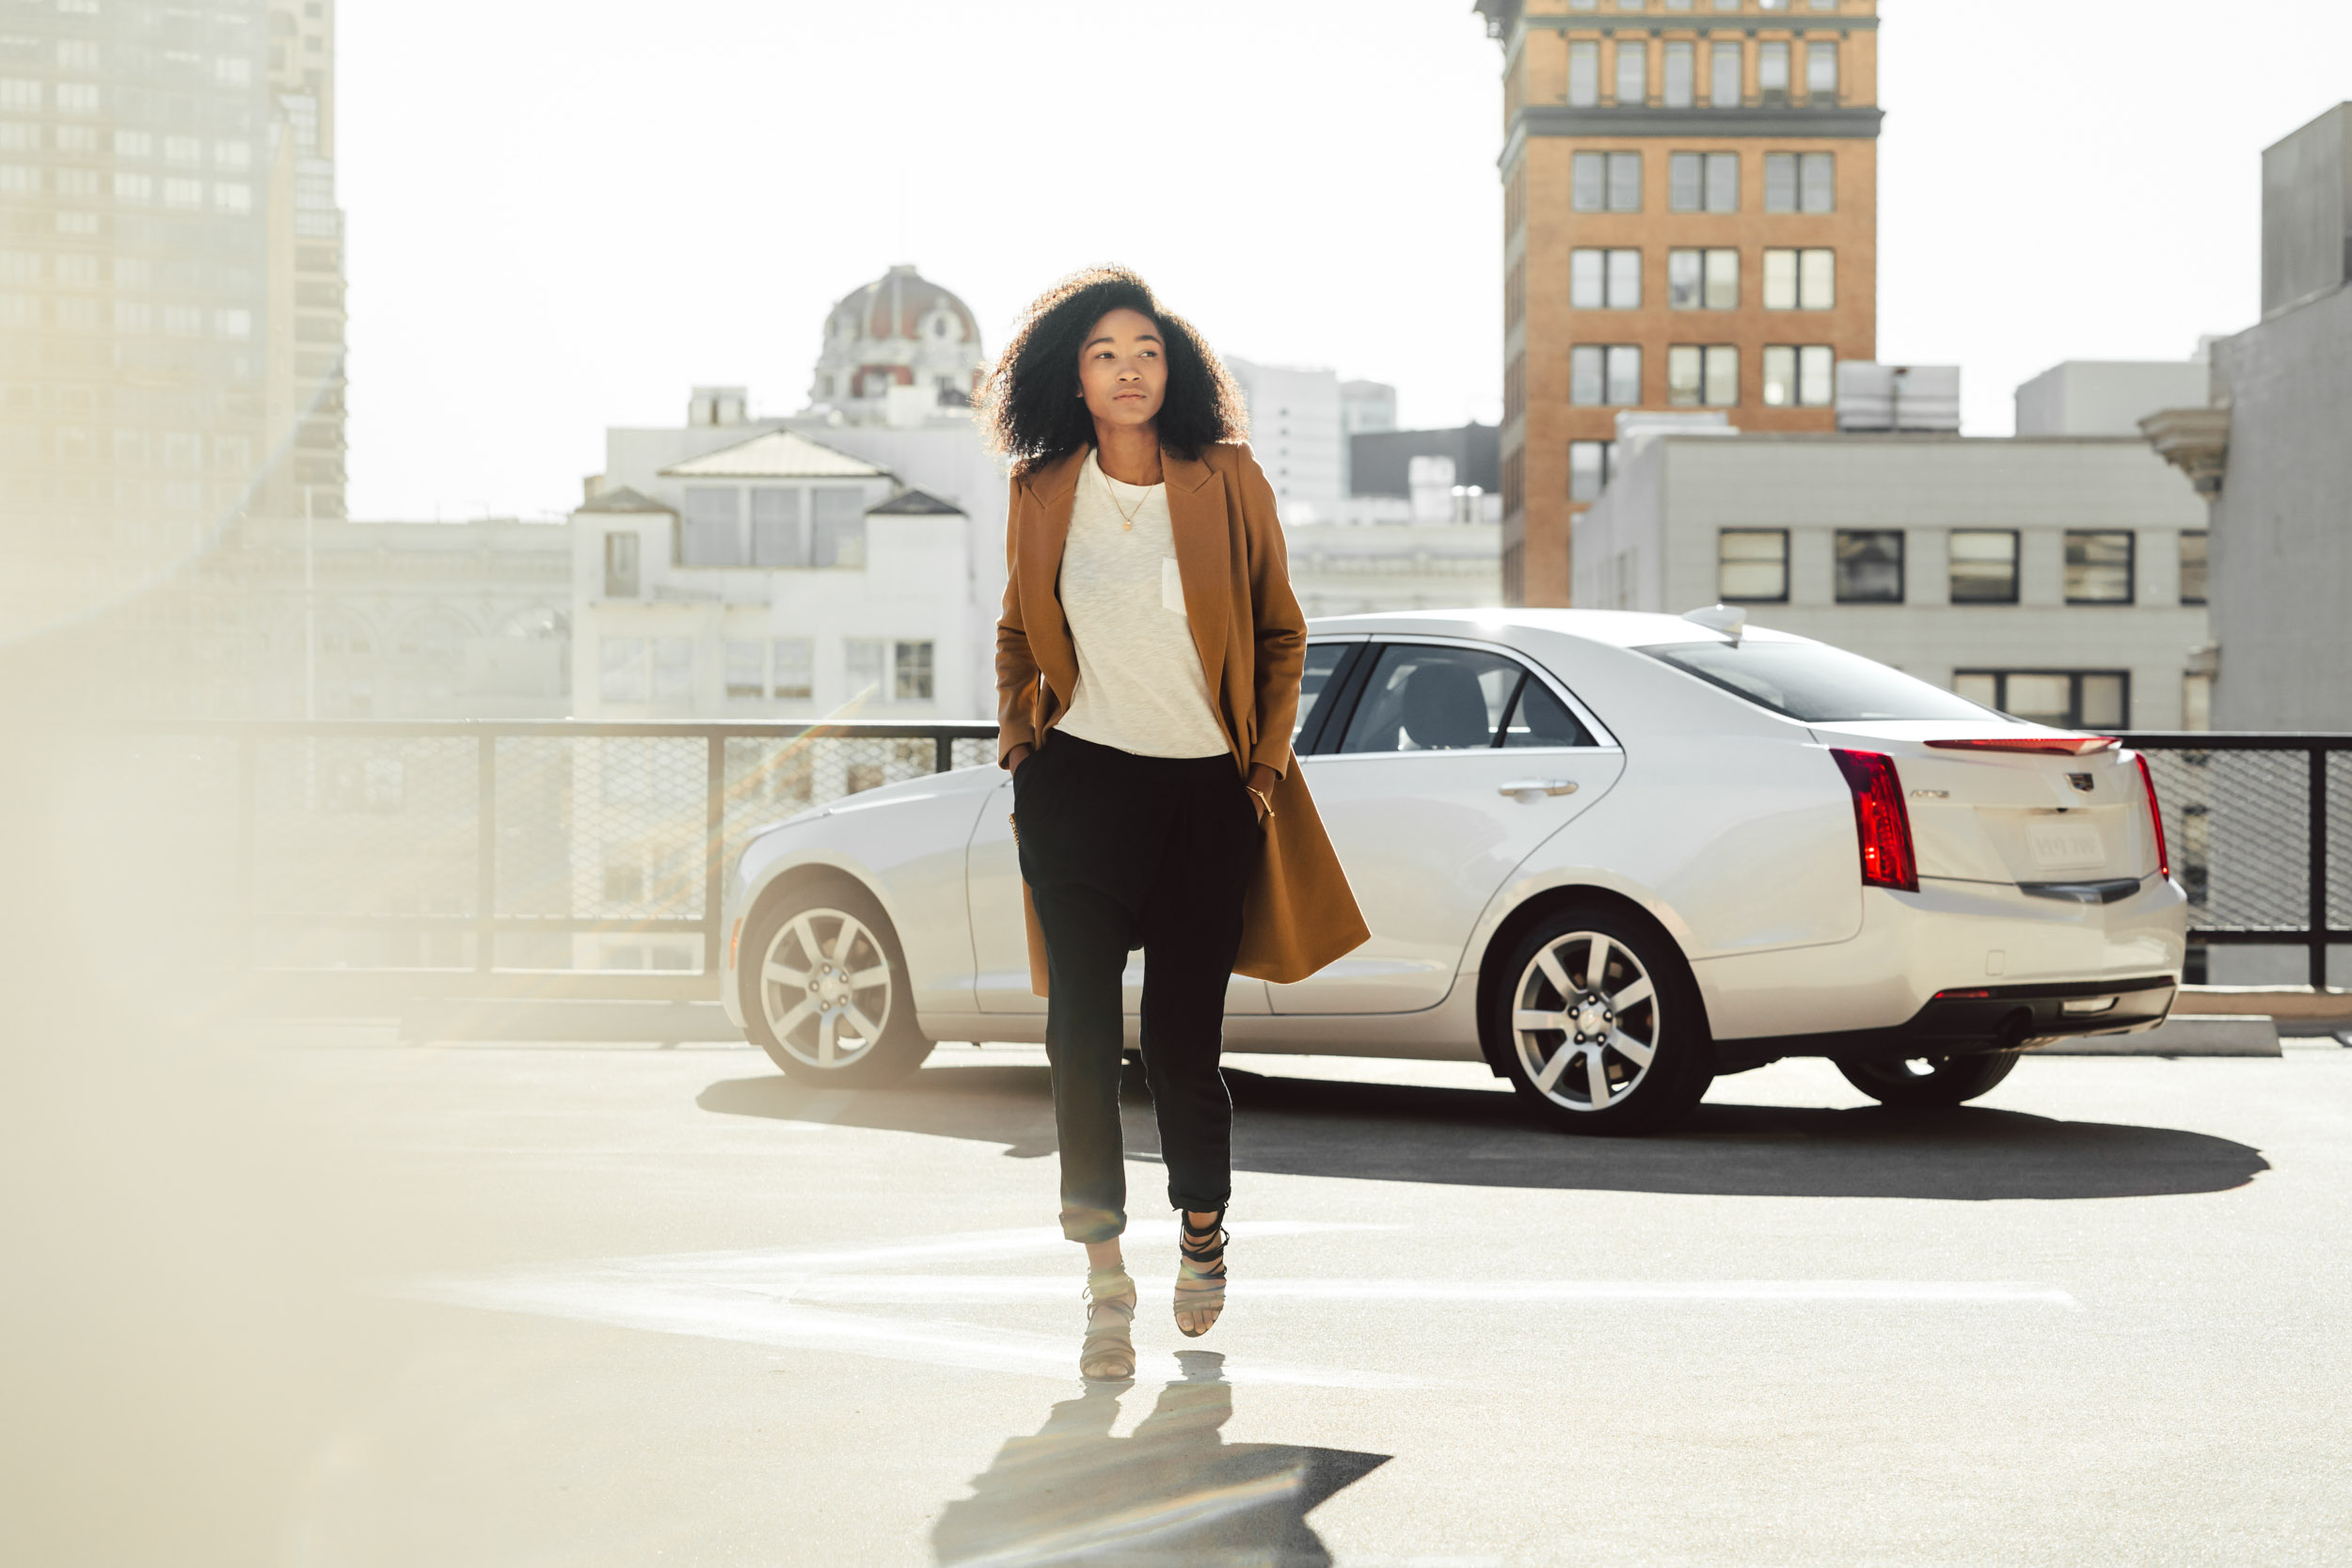 A female models walks confidently across a parking lot rooftop with her white Cadillac in the background